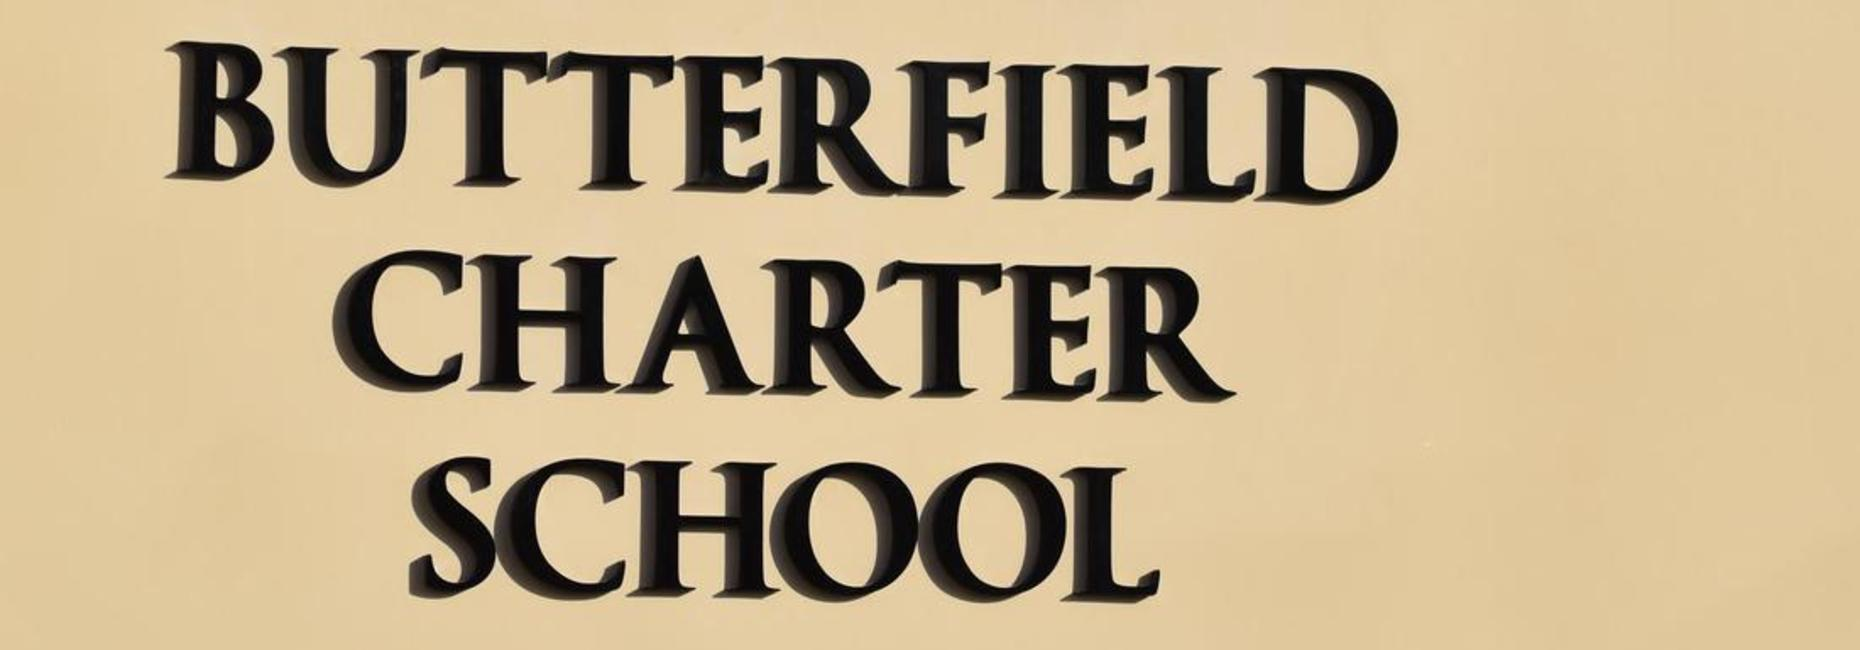 Butterfield Charter